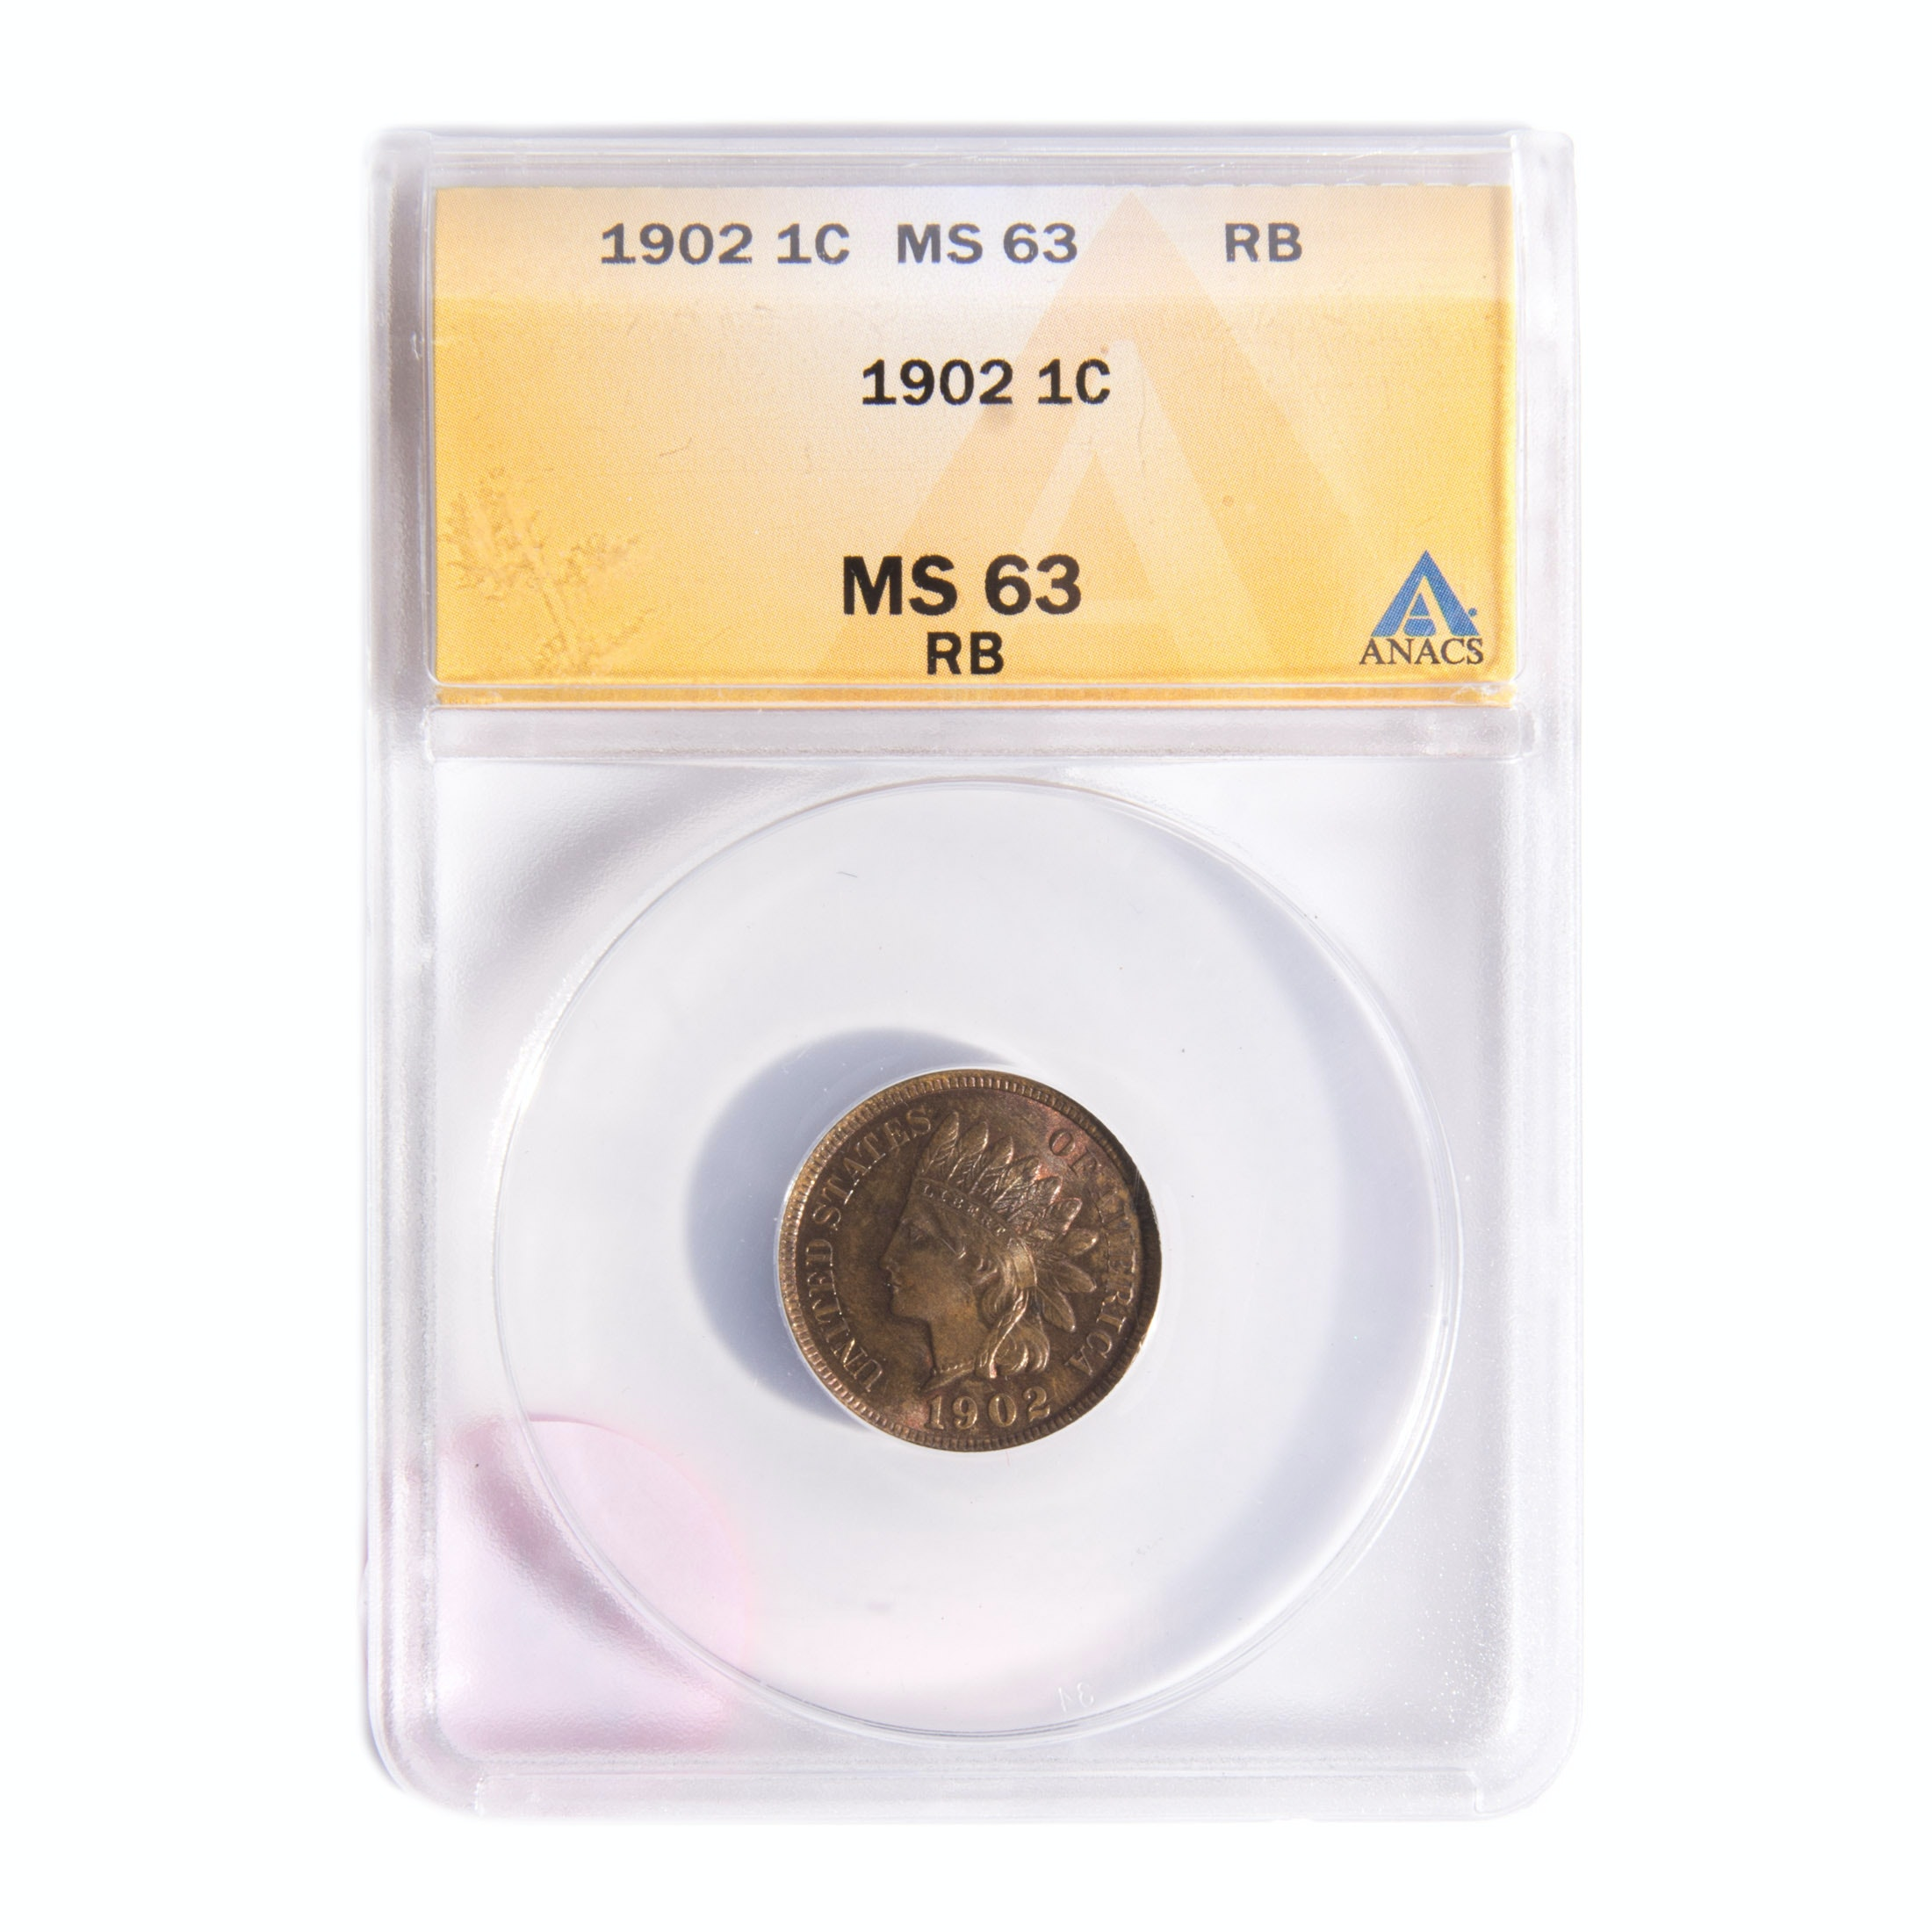 1902 Indian Head Penny ANACS Graded MS 63 RB